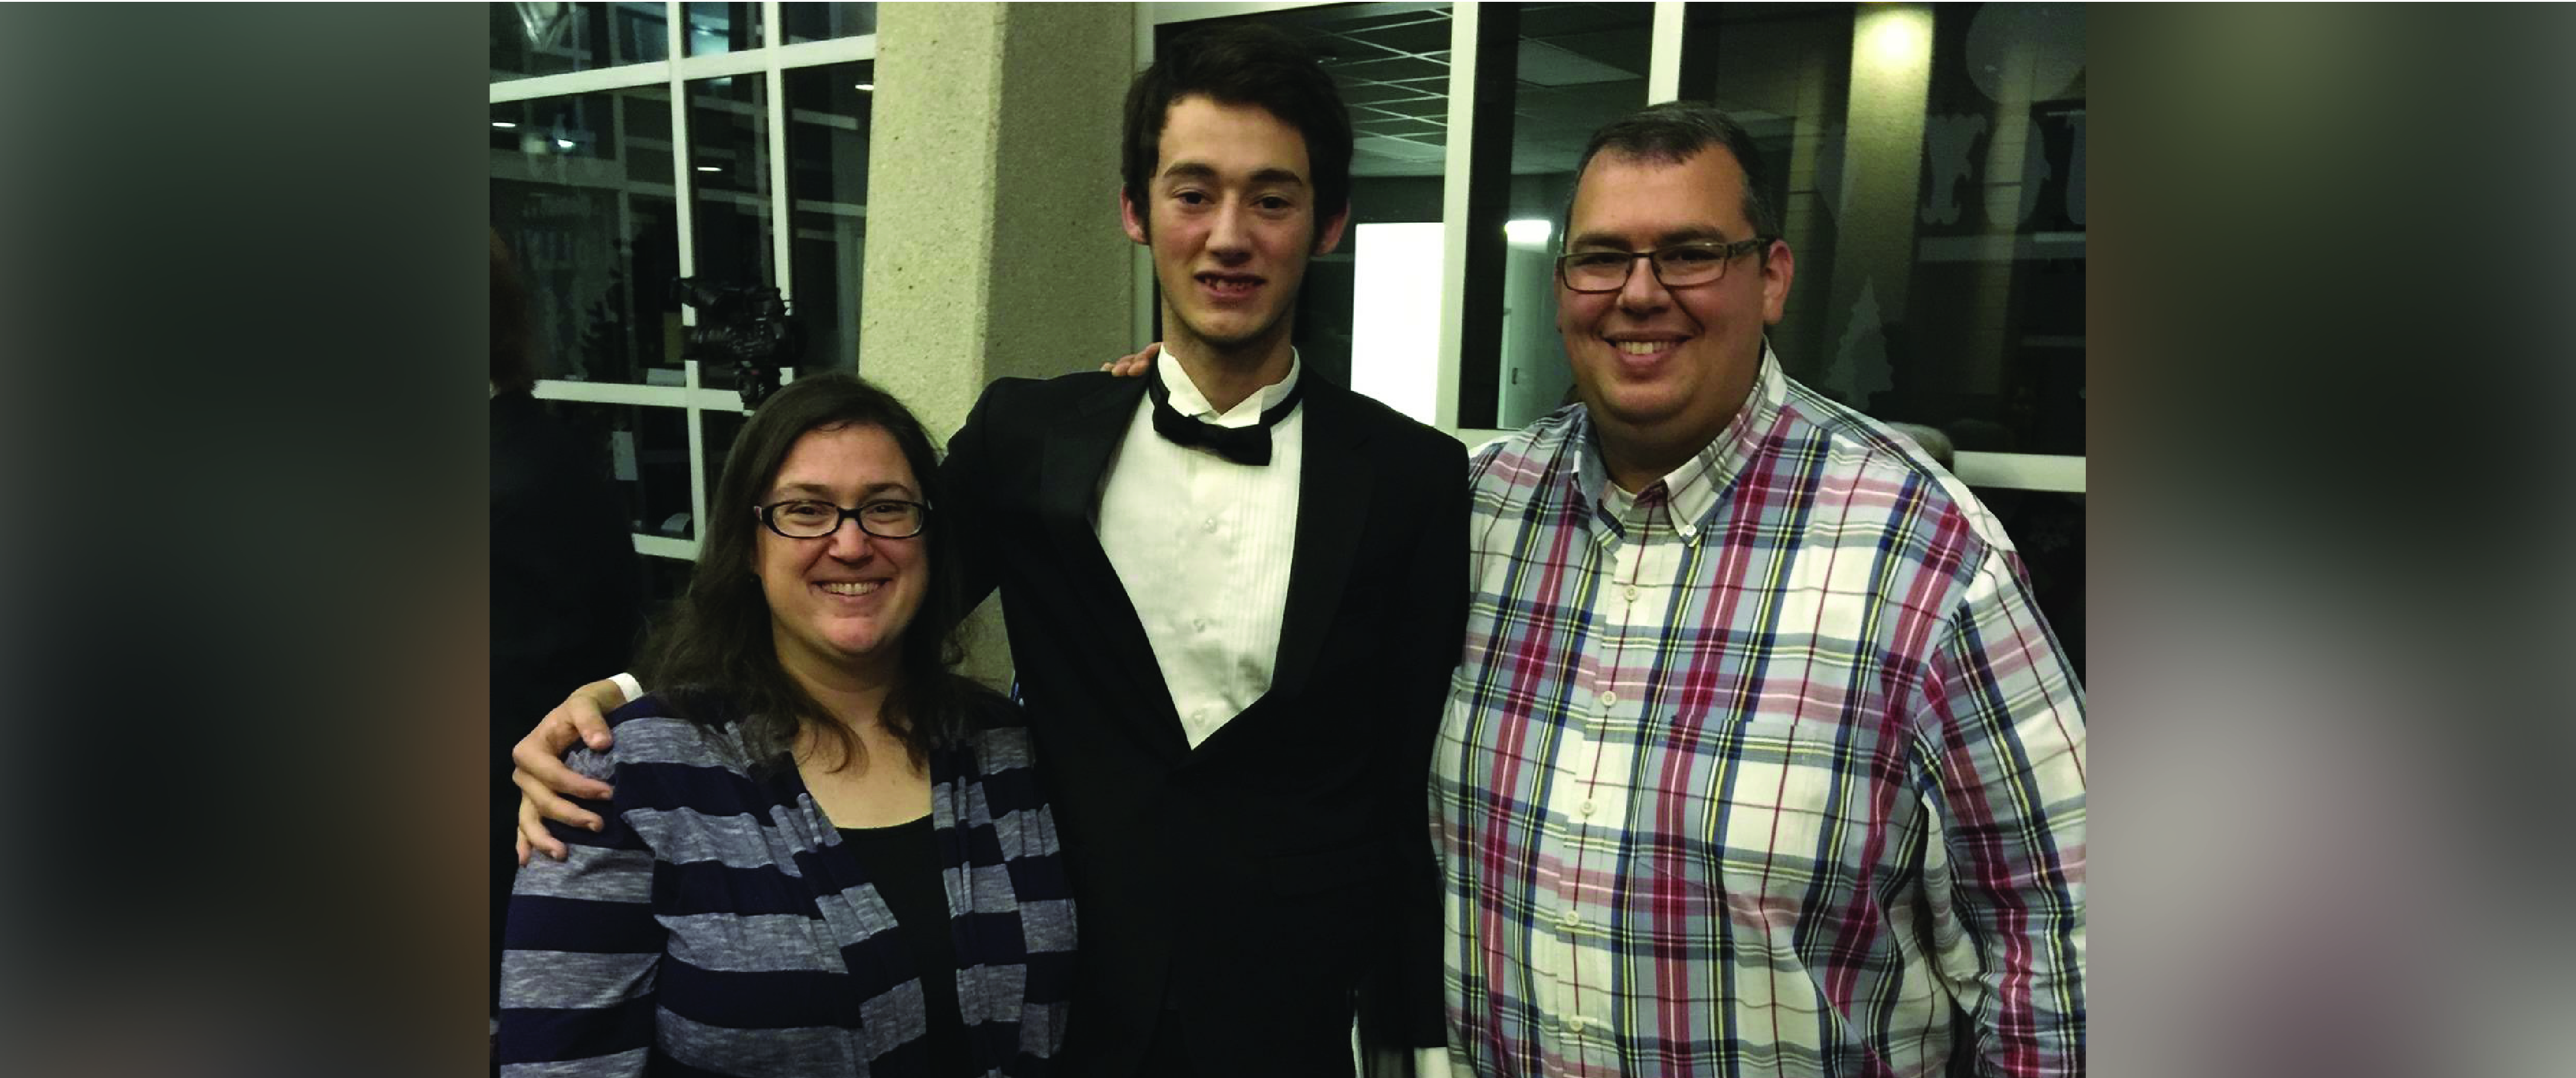 From left, mom with striped shirt, son wearing a tuxedo, dad wearing a plaid shirt